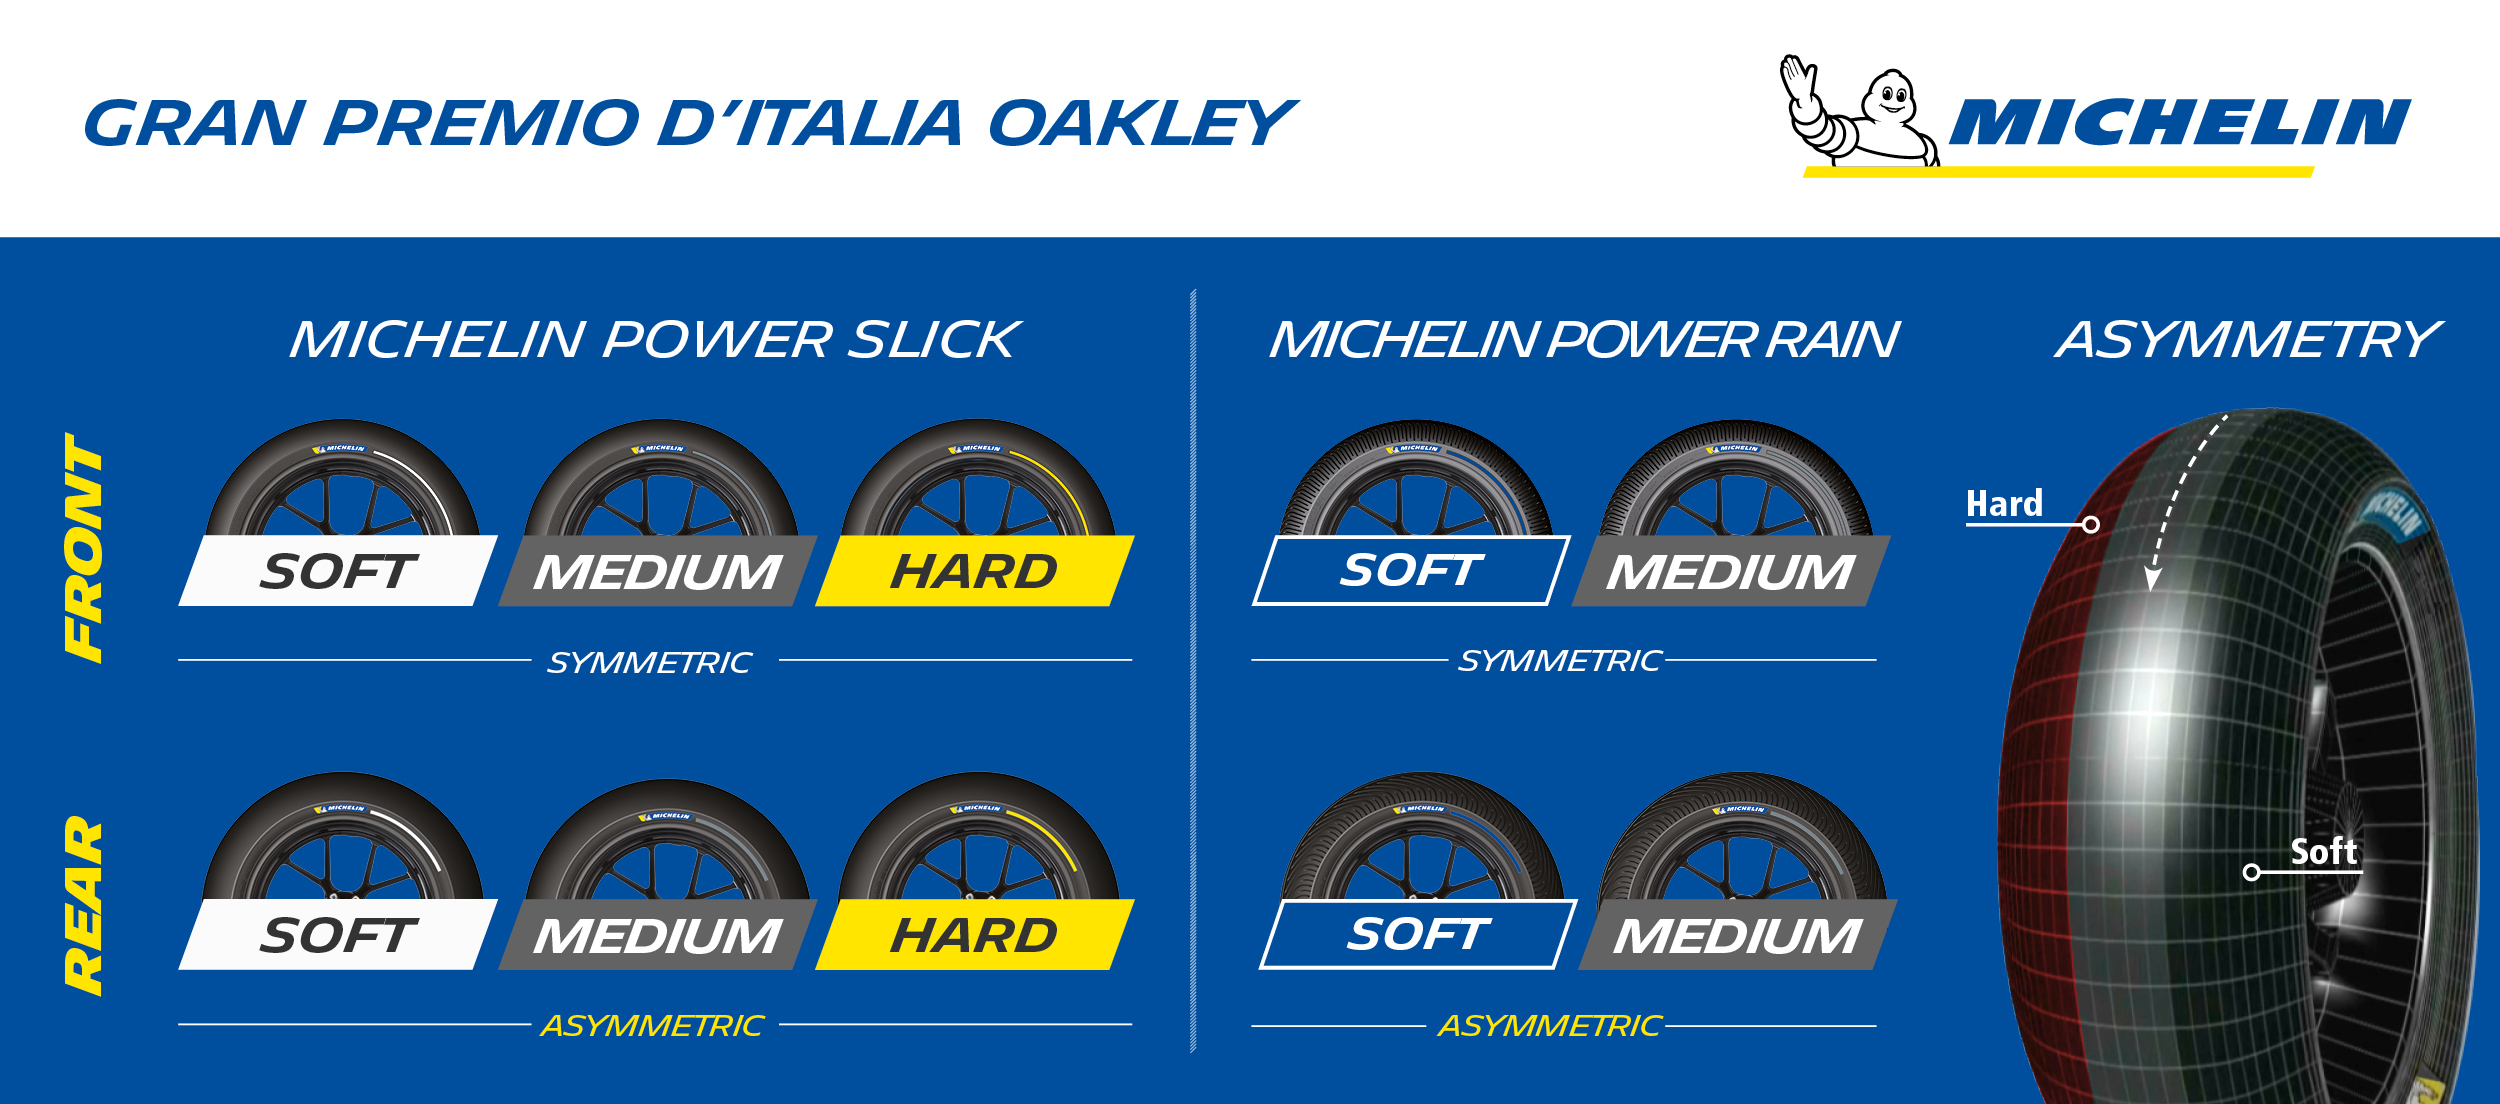 Michelin_ItalyGP_TyreAllocation